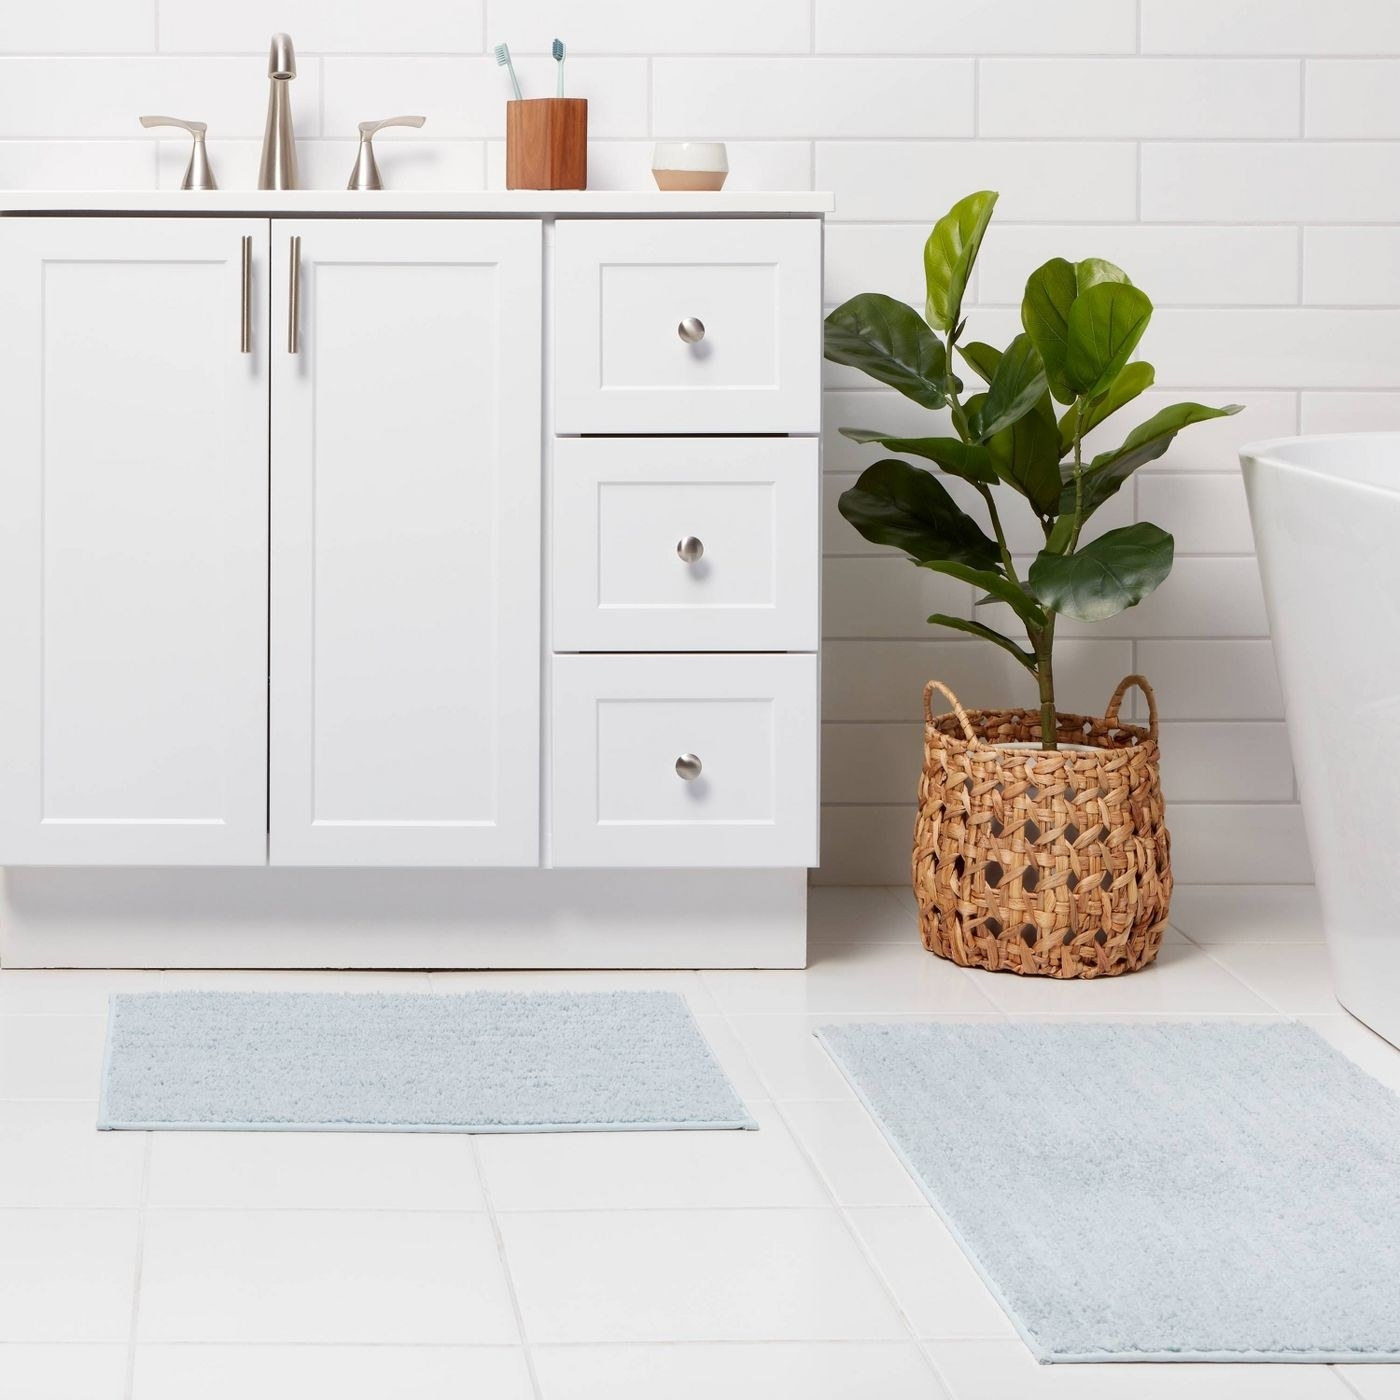 two light blue bath mats staged in a bathroom